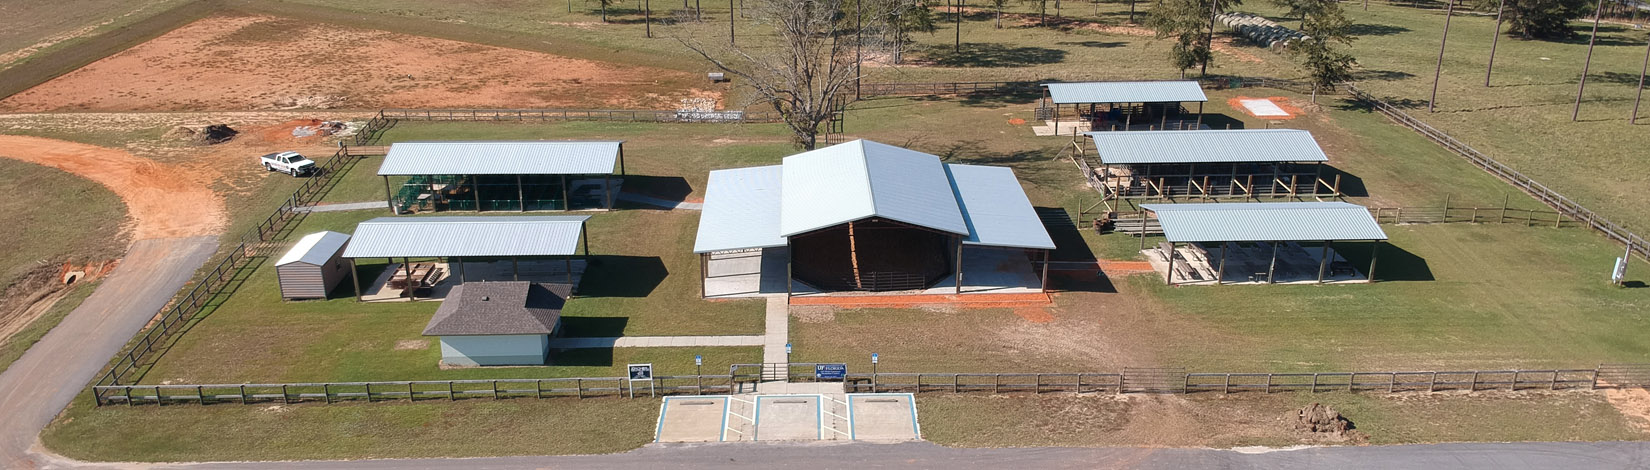 4 H Livestock Facility Rental Agreement Ufifas Extension